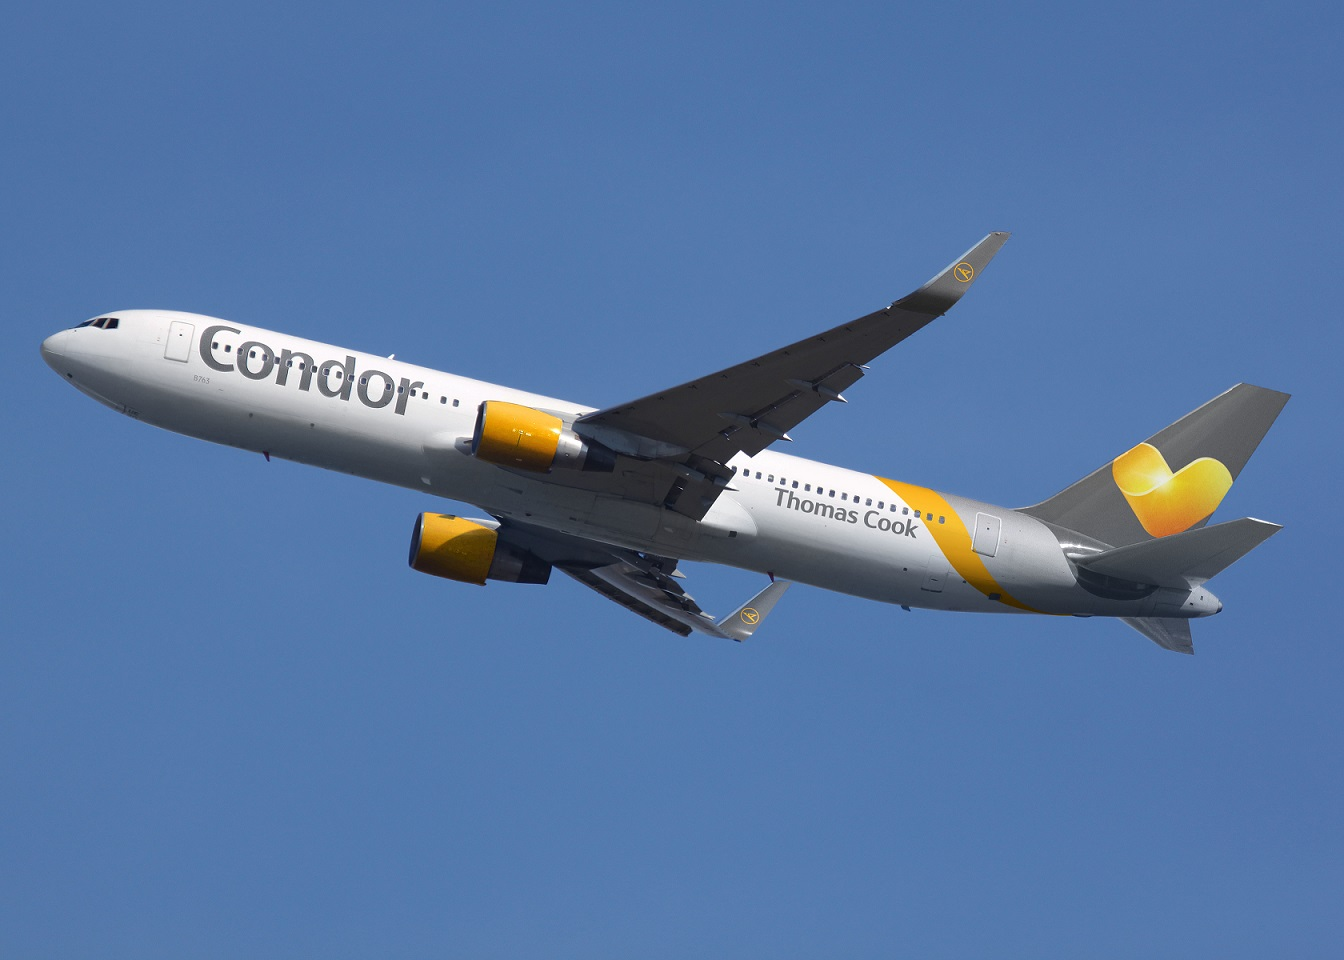 NEW CONDOR FLIGHTS TO INCREASE BUSINESS/TOURISM OPPORTUNITIES